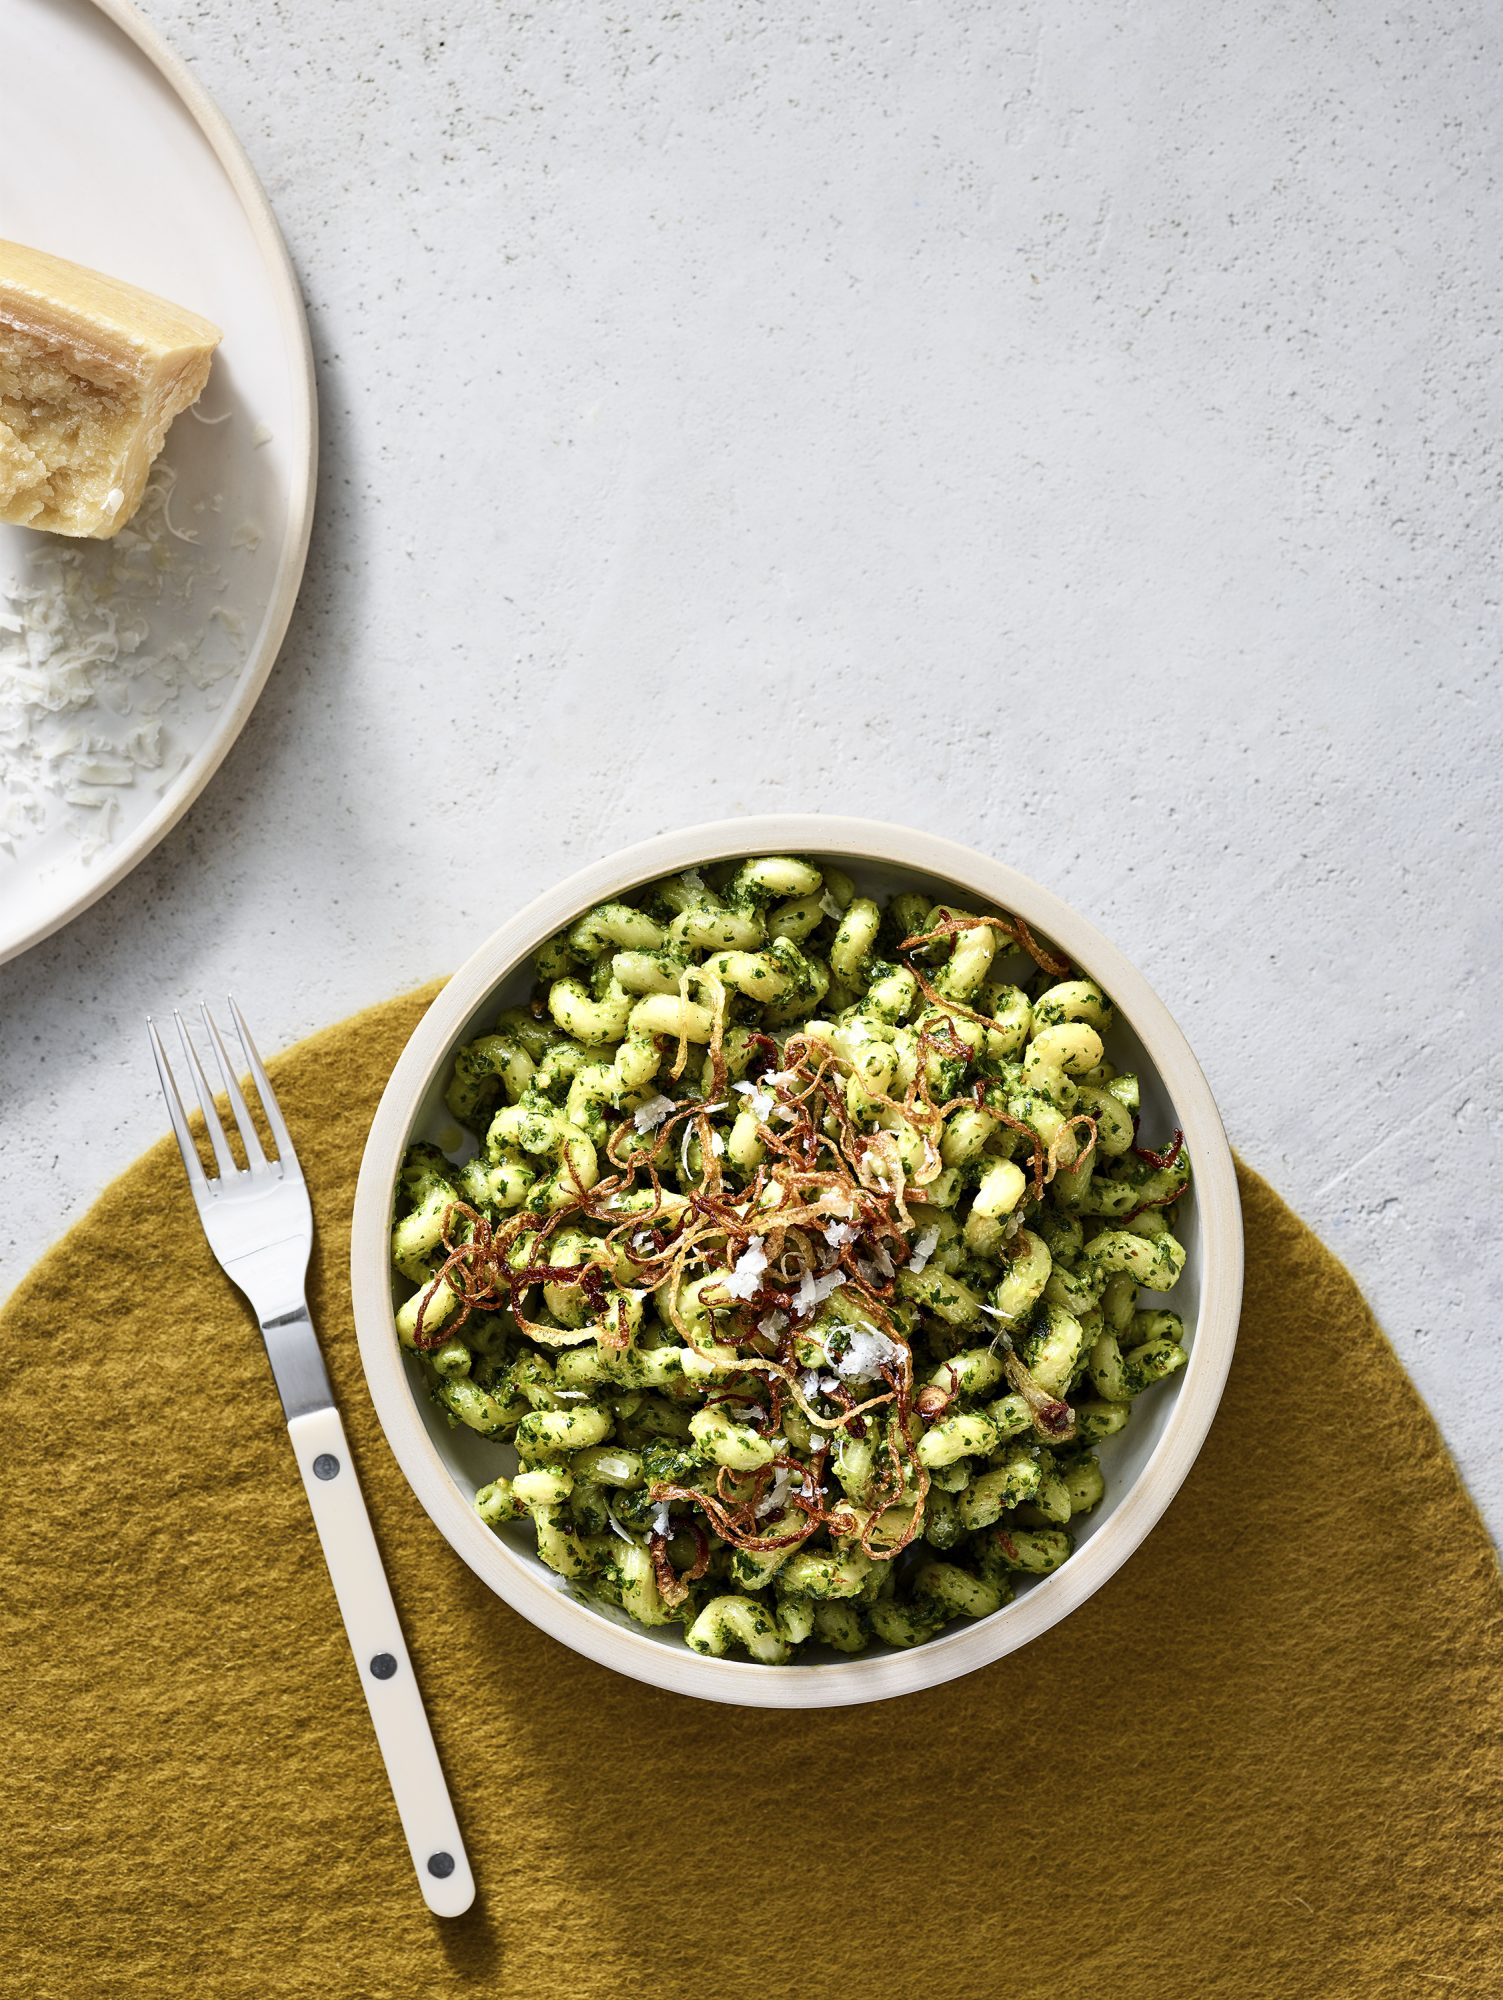 Pasta With Parsley-Almond Pesto and Fried Onions